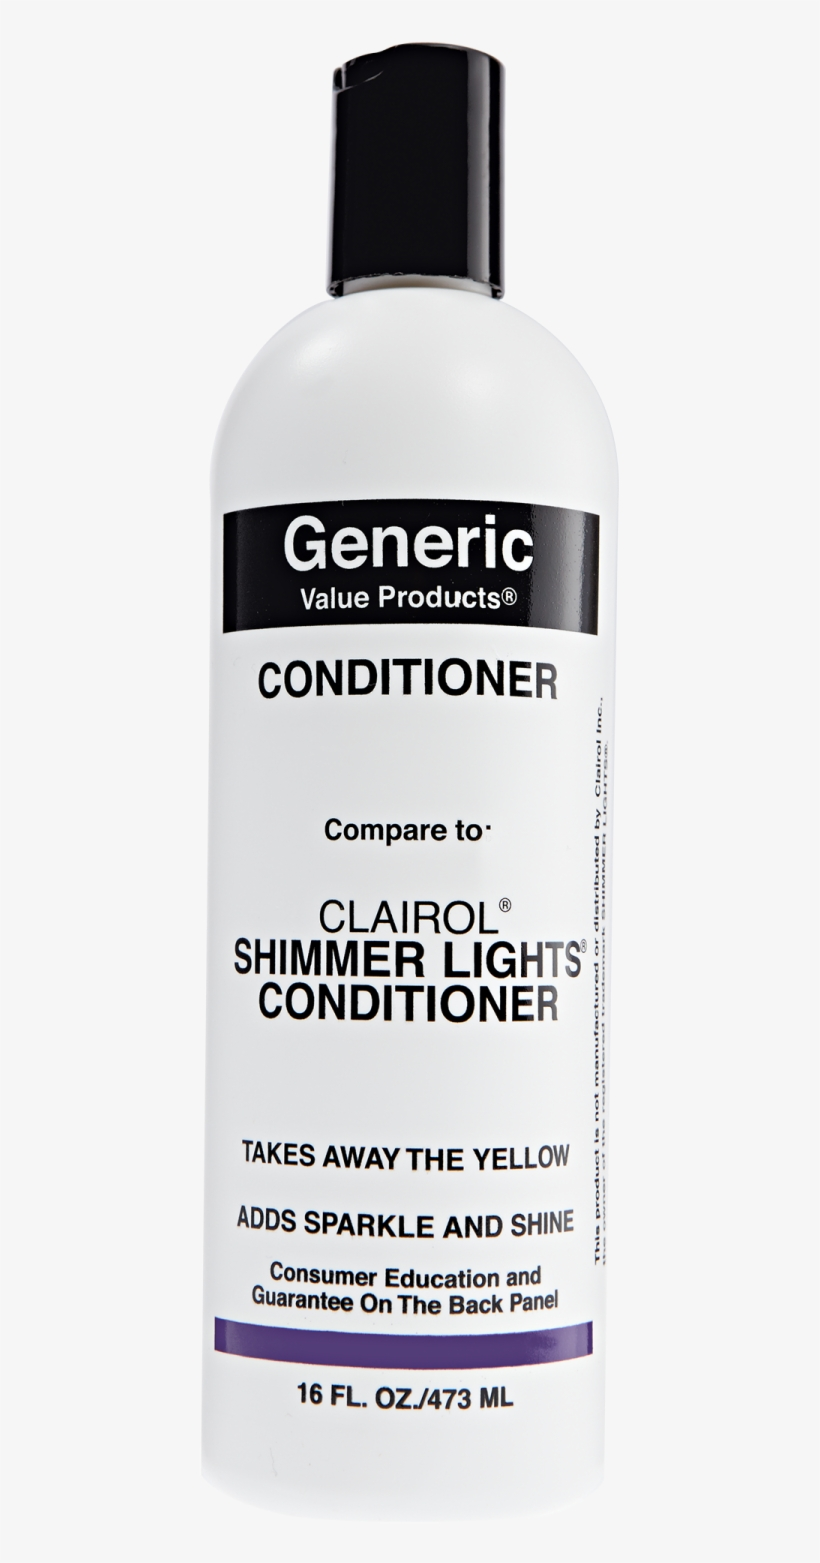 Conditioner Compare To Clairol Shimmer Lights Conditioner - Generic Value Products Tea Tree Oil Shampoo 33.8 Oz, transparent png #4797899